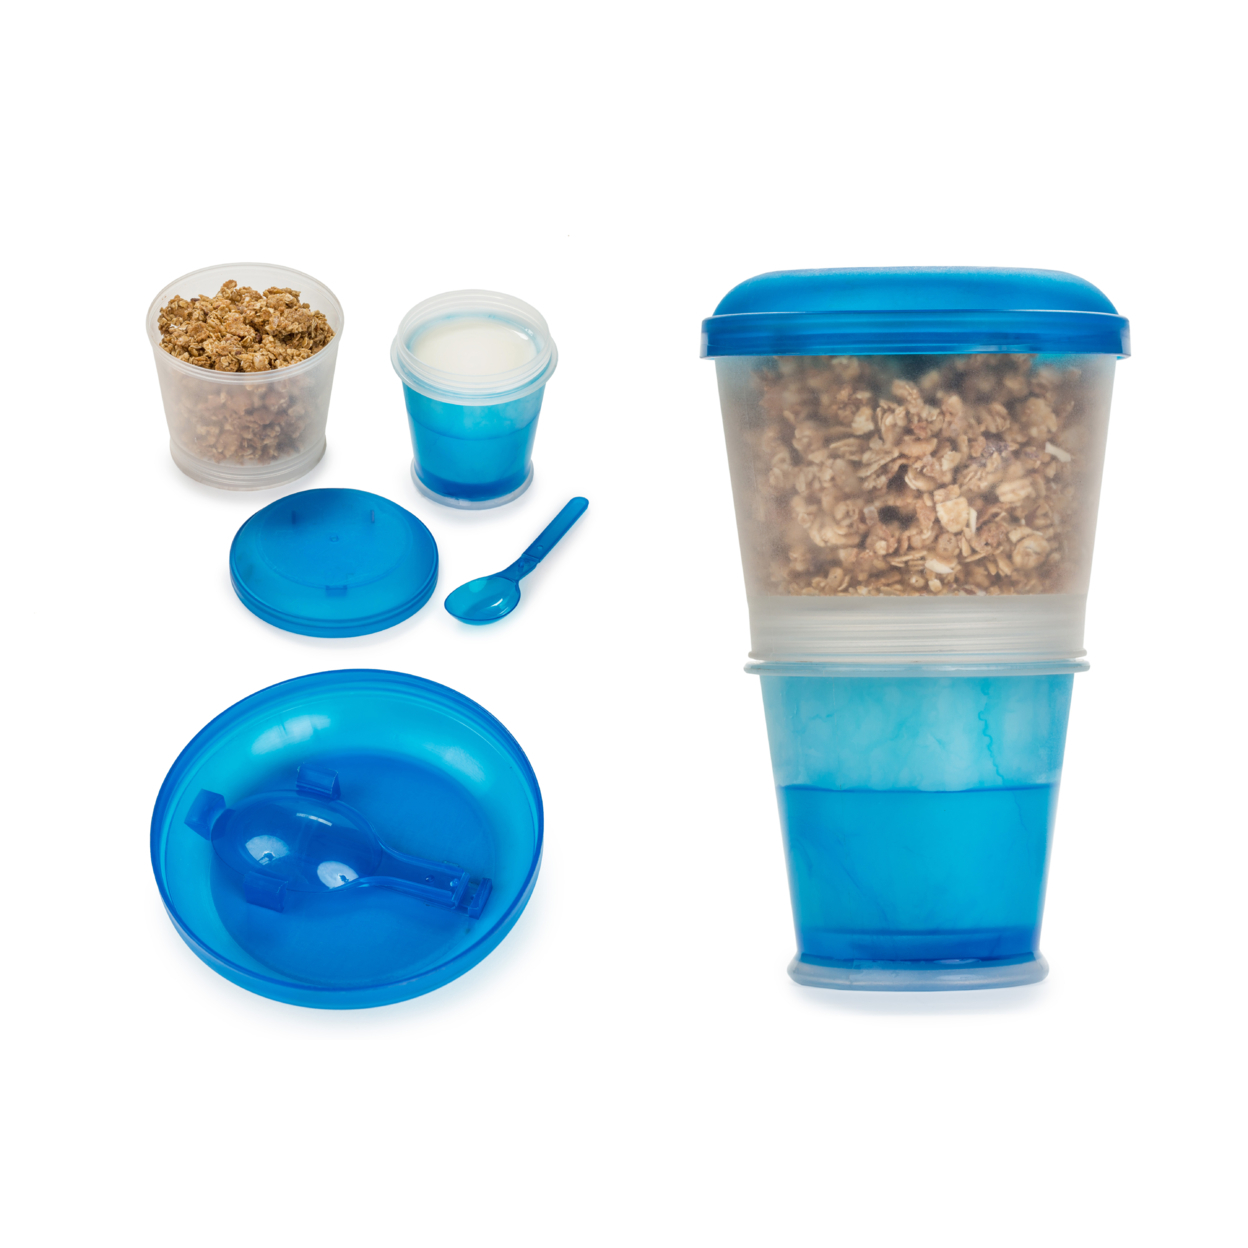 Cereal To-Go Cup-2 Pack - Blue 588f7f2399336a3c3b008e4e